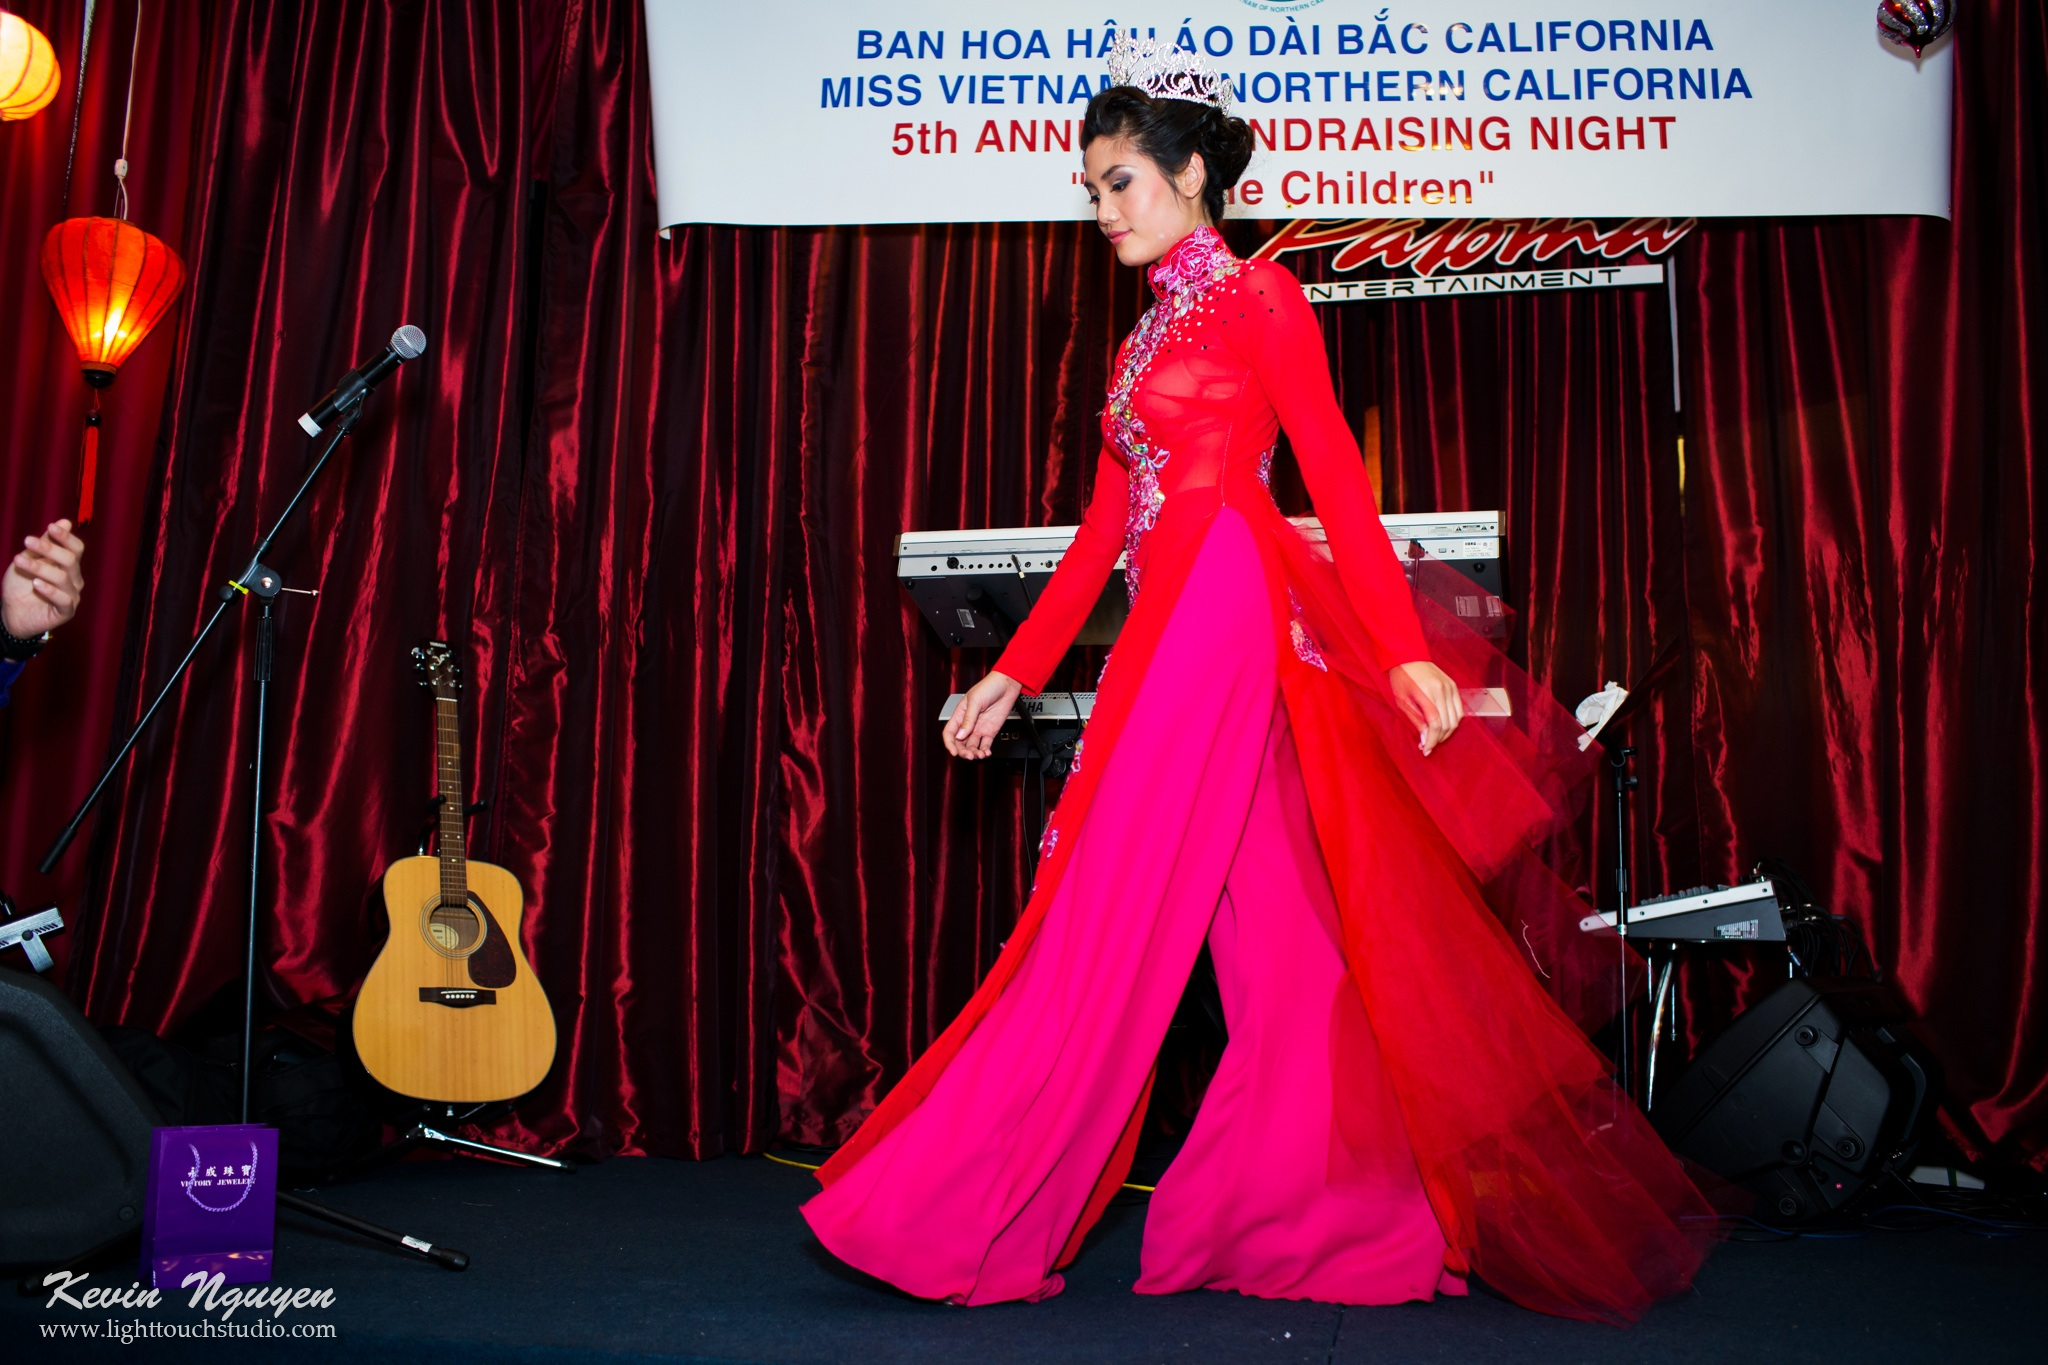 Charity Fundraiser 2012 - For the Children - Paloma, San Jose - Image 073